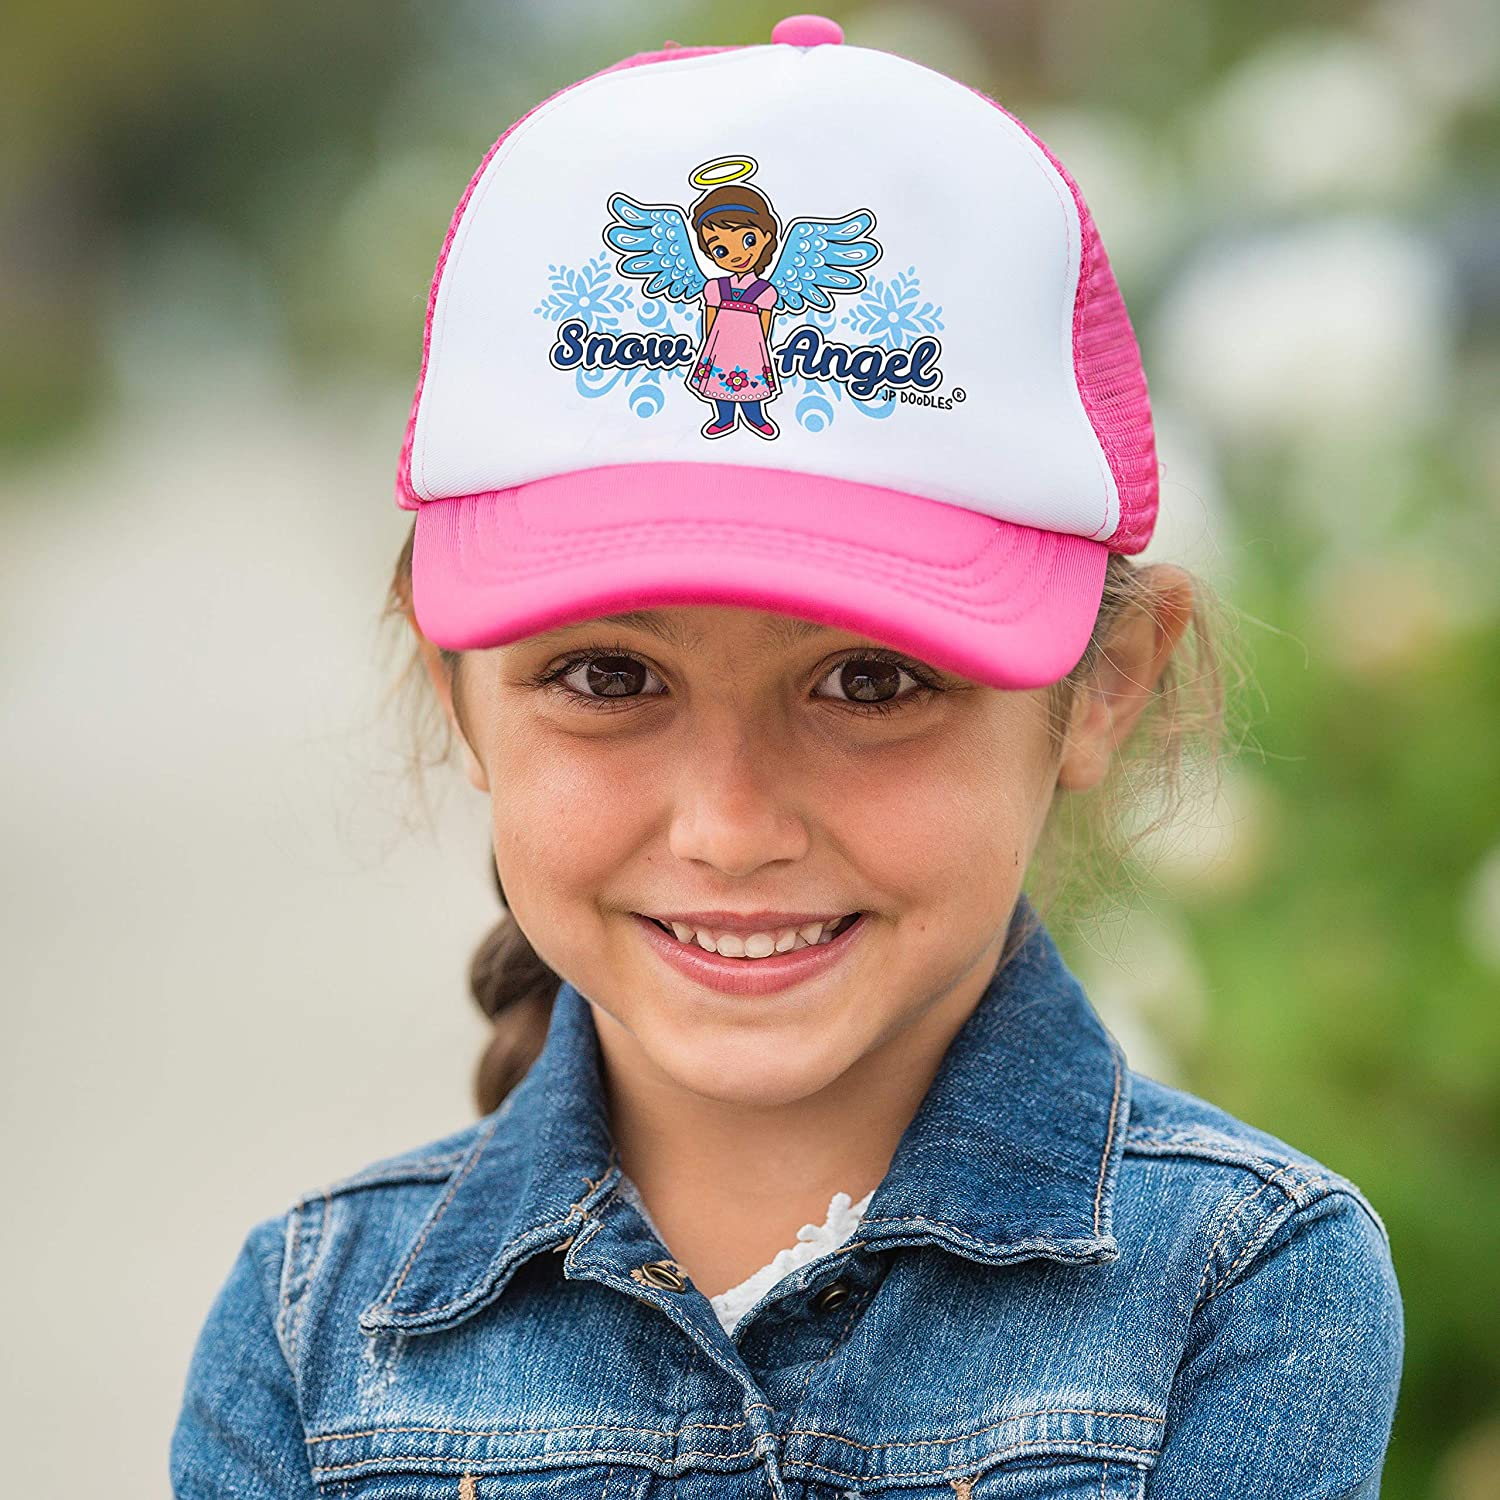 JP DOoDLES Snow Angel on Kids Trucker Hat Toddler The Kids Baseball Cap is Available in Baby and Youth Sizes